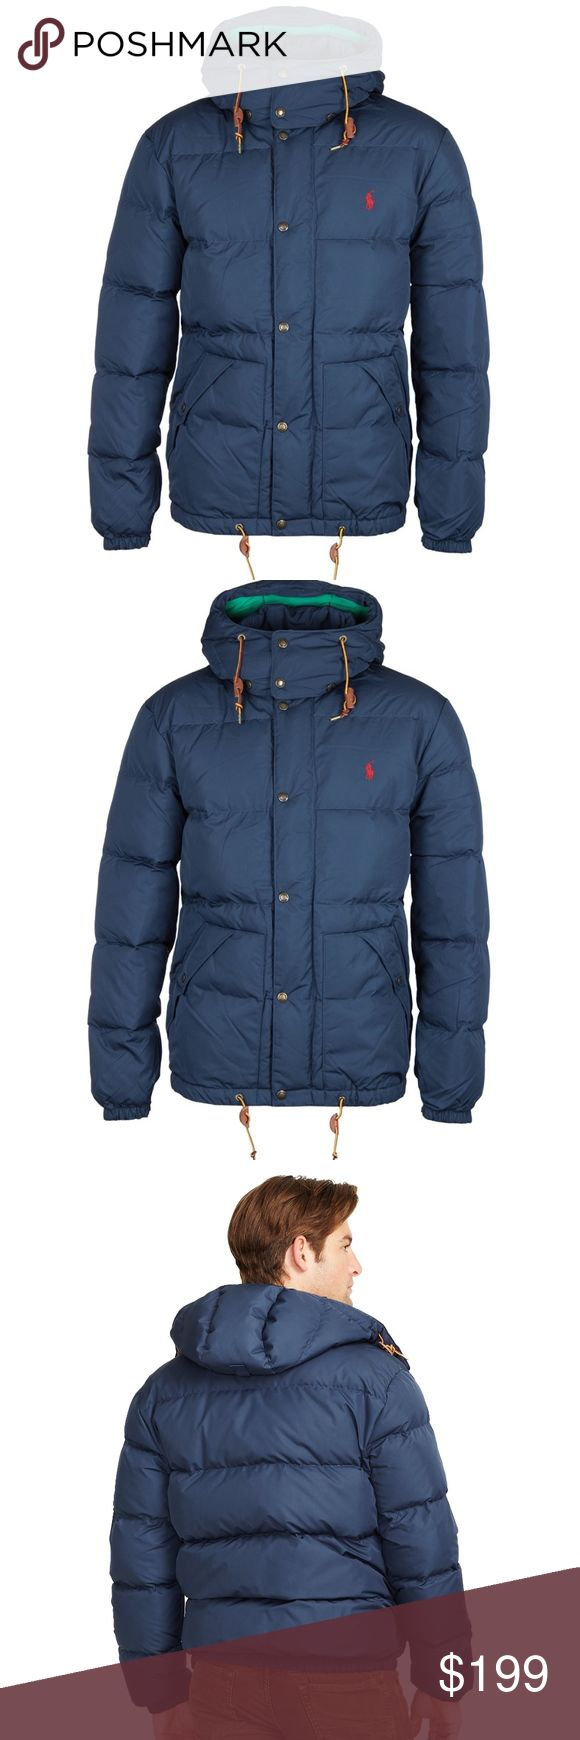 POLO Ralph Lauren ELMWOOD PORTLAND DOWN JACKET M Polo Ralph Lauren Elmwood Down Jacket Orig. $345.00 COLOR: Portland Navy SIZE: M Great used condition.Light wear. No damage or flaws to be noted. Quality jacket.  Crafted from a water-repellent microfiber, this essential down-and-feather jacket features a convenient detachable hood and Ralph Lauren's signature pony embroidery. Detachable drawcord hood with an adjustable buckled tab at the back and a snapped throat tab Concealed full-zip…